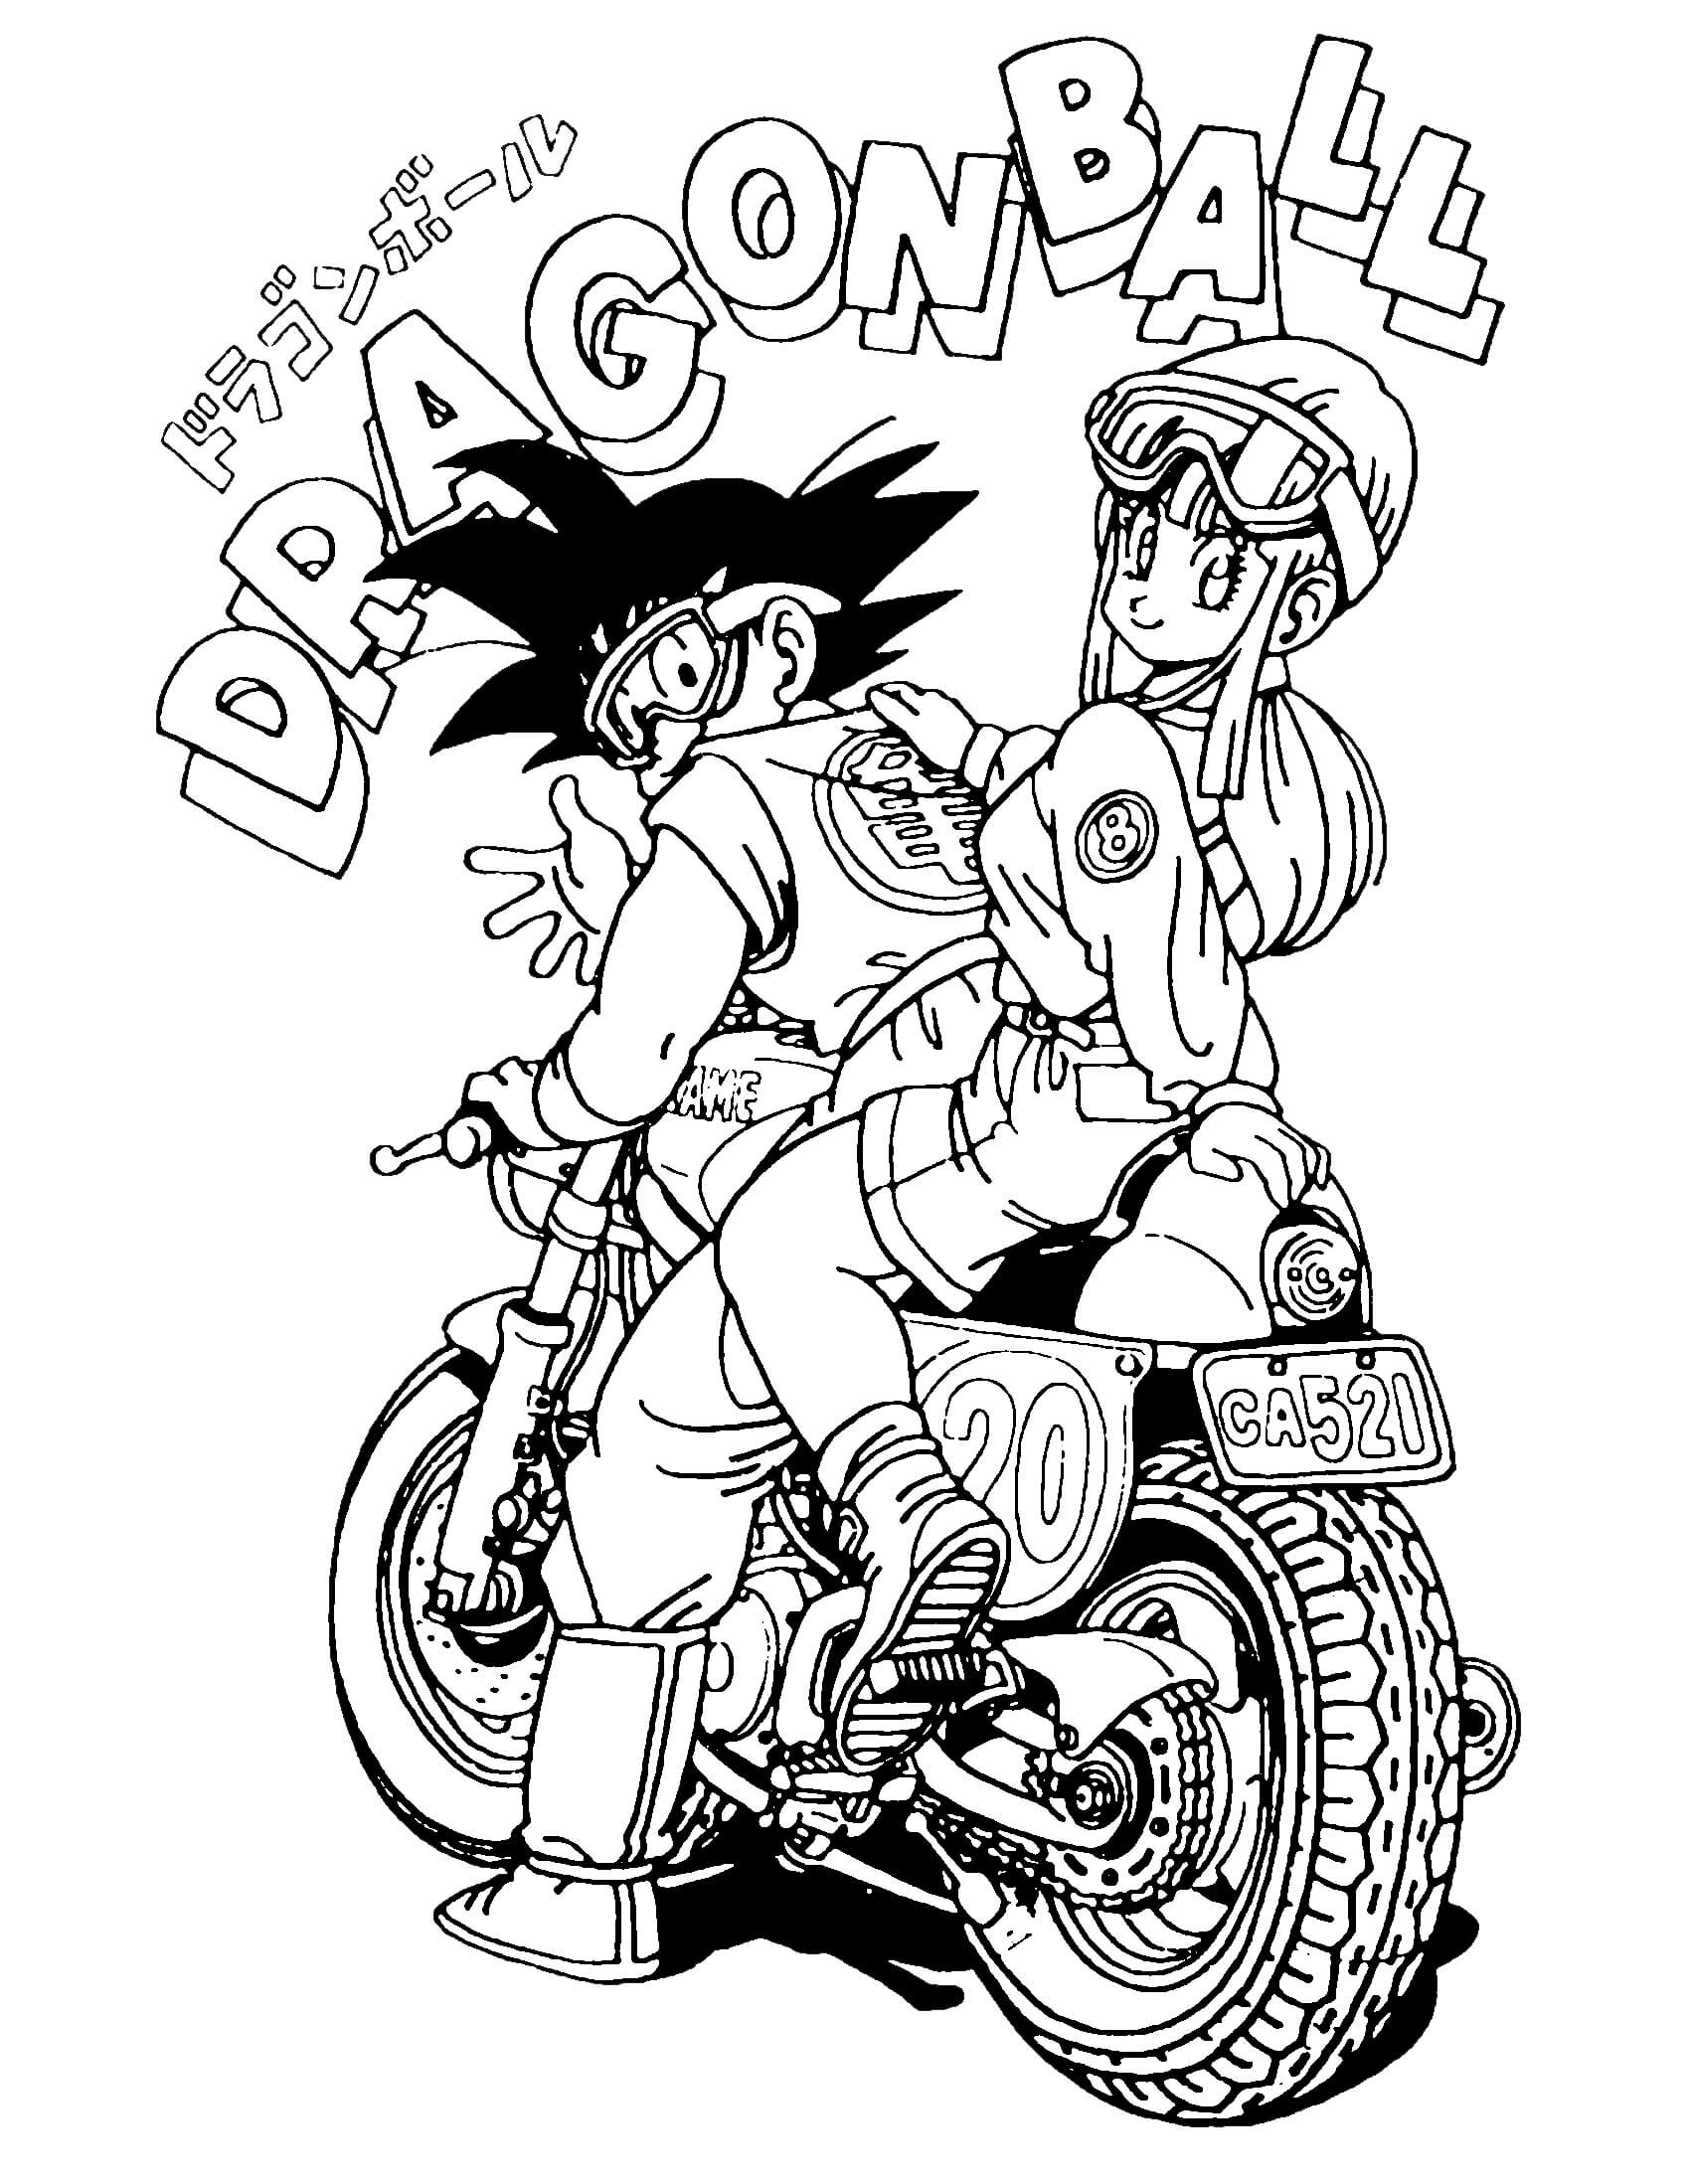 Printable Dragon Ball Z Colouring Pages | Sangoku And Bulma On Motorbike Dragon Ball Z Kids Coloring Pages